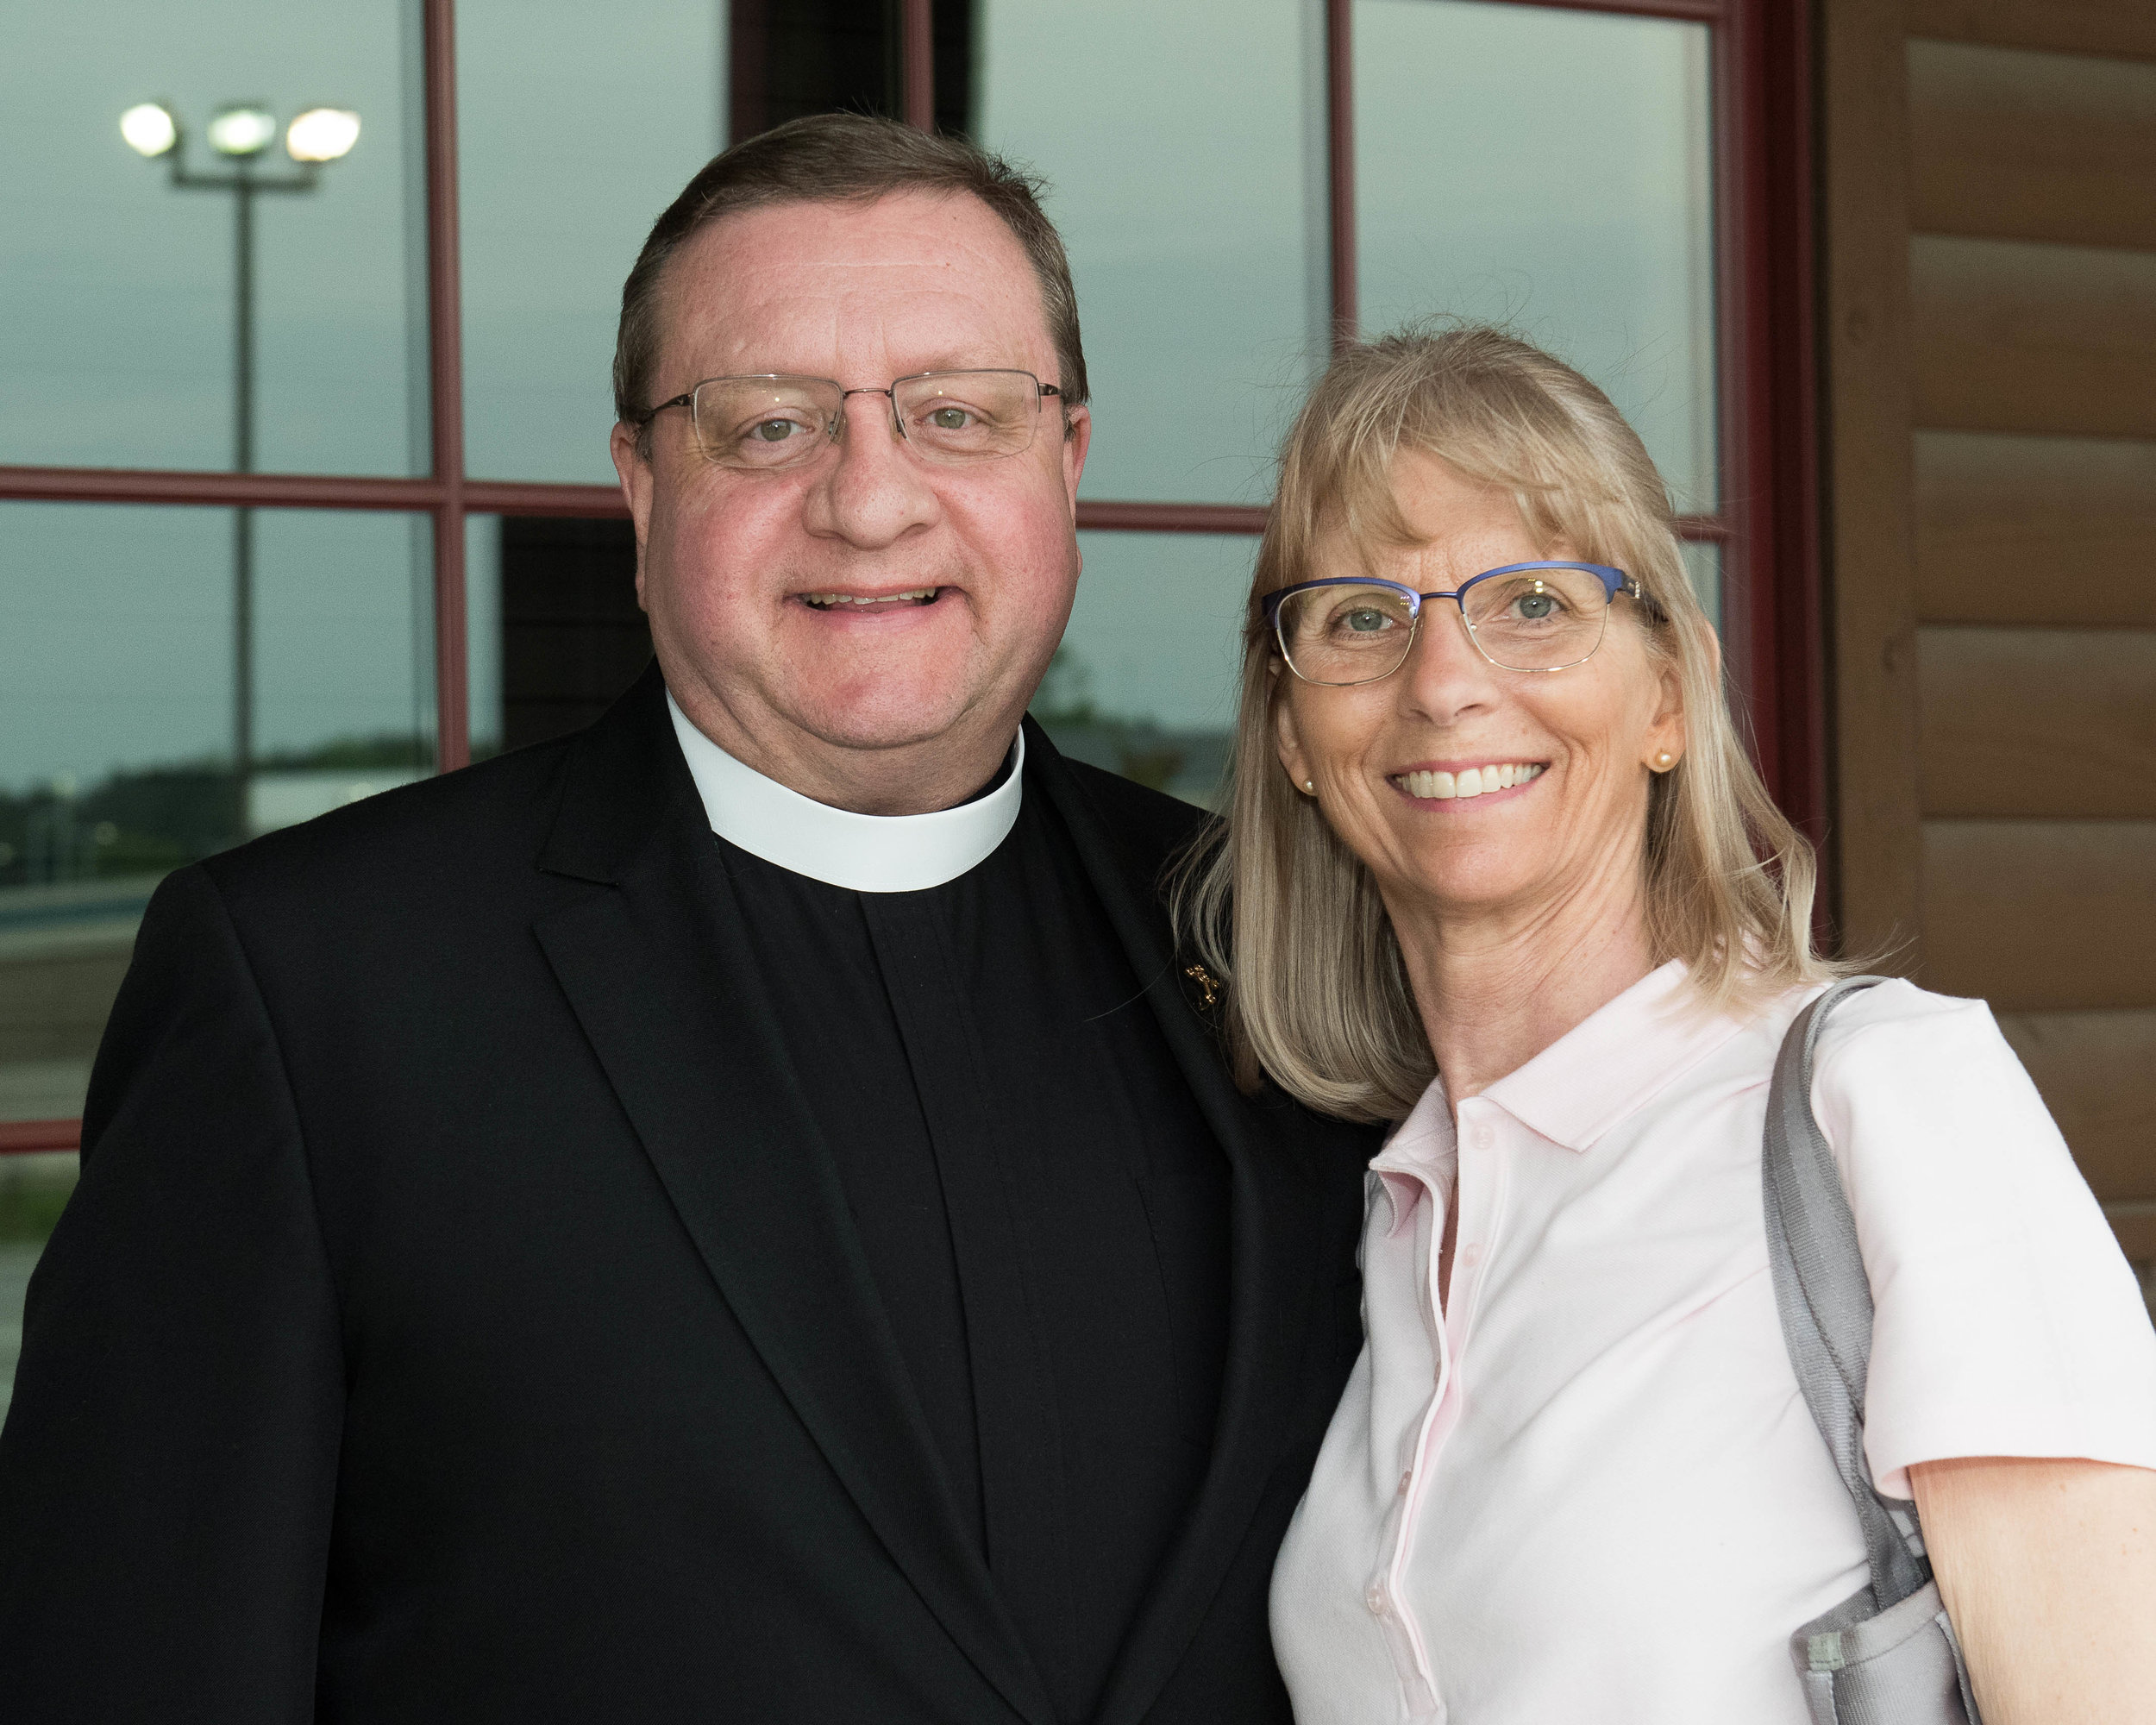 Fr. Richard and Diana Daly